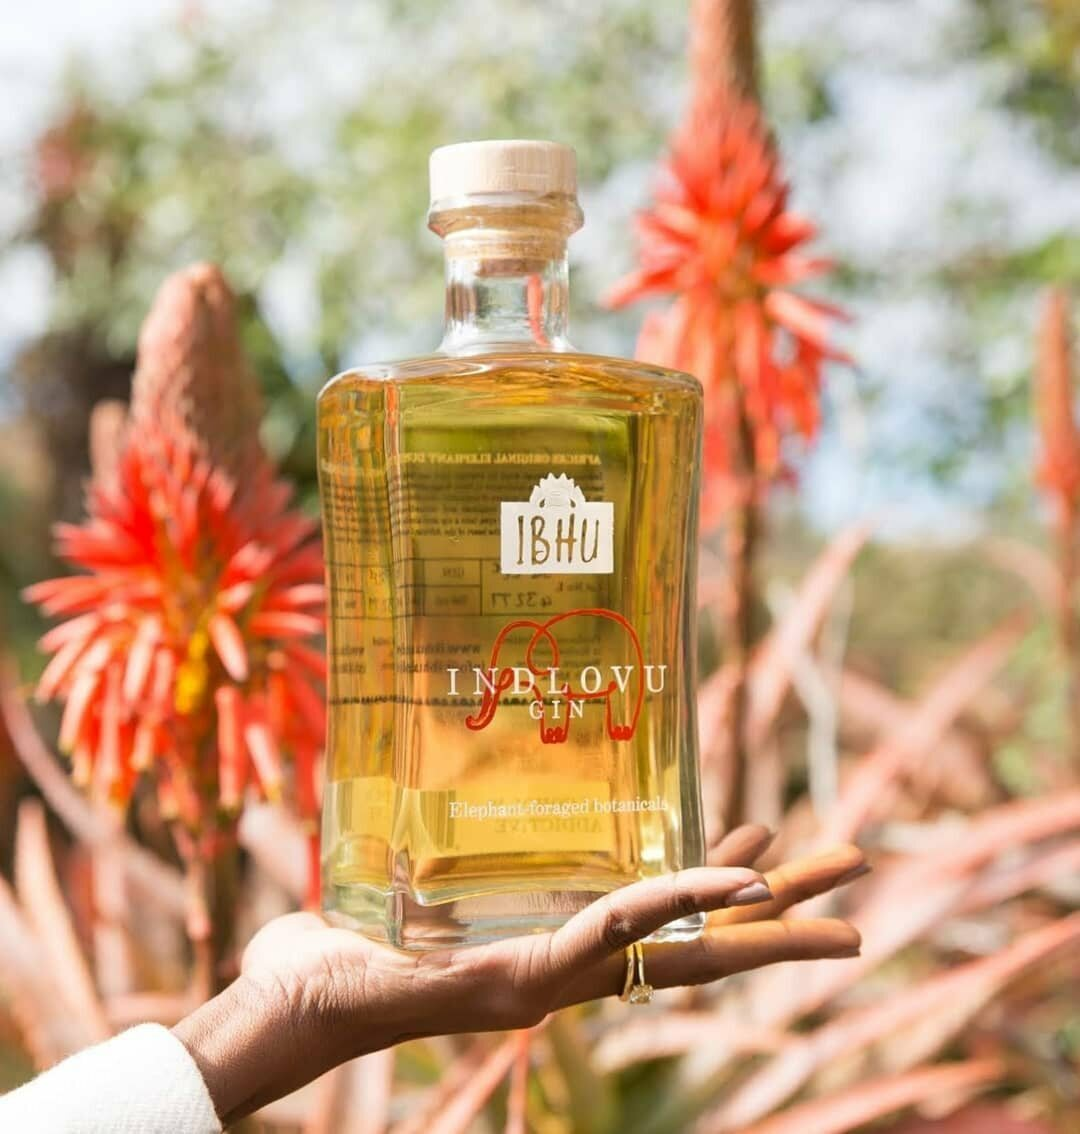 An amalgamation of rich bush flavor is concealed in each handful of elephant dung, waiting to give Indlovu's base gin its signature earthy, smoky tones.